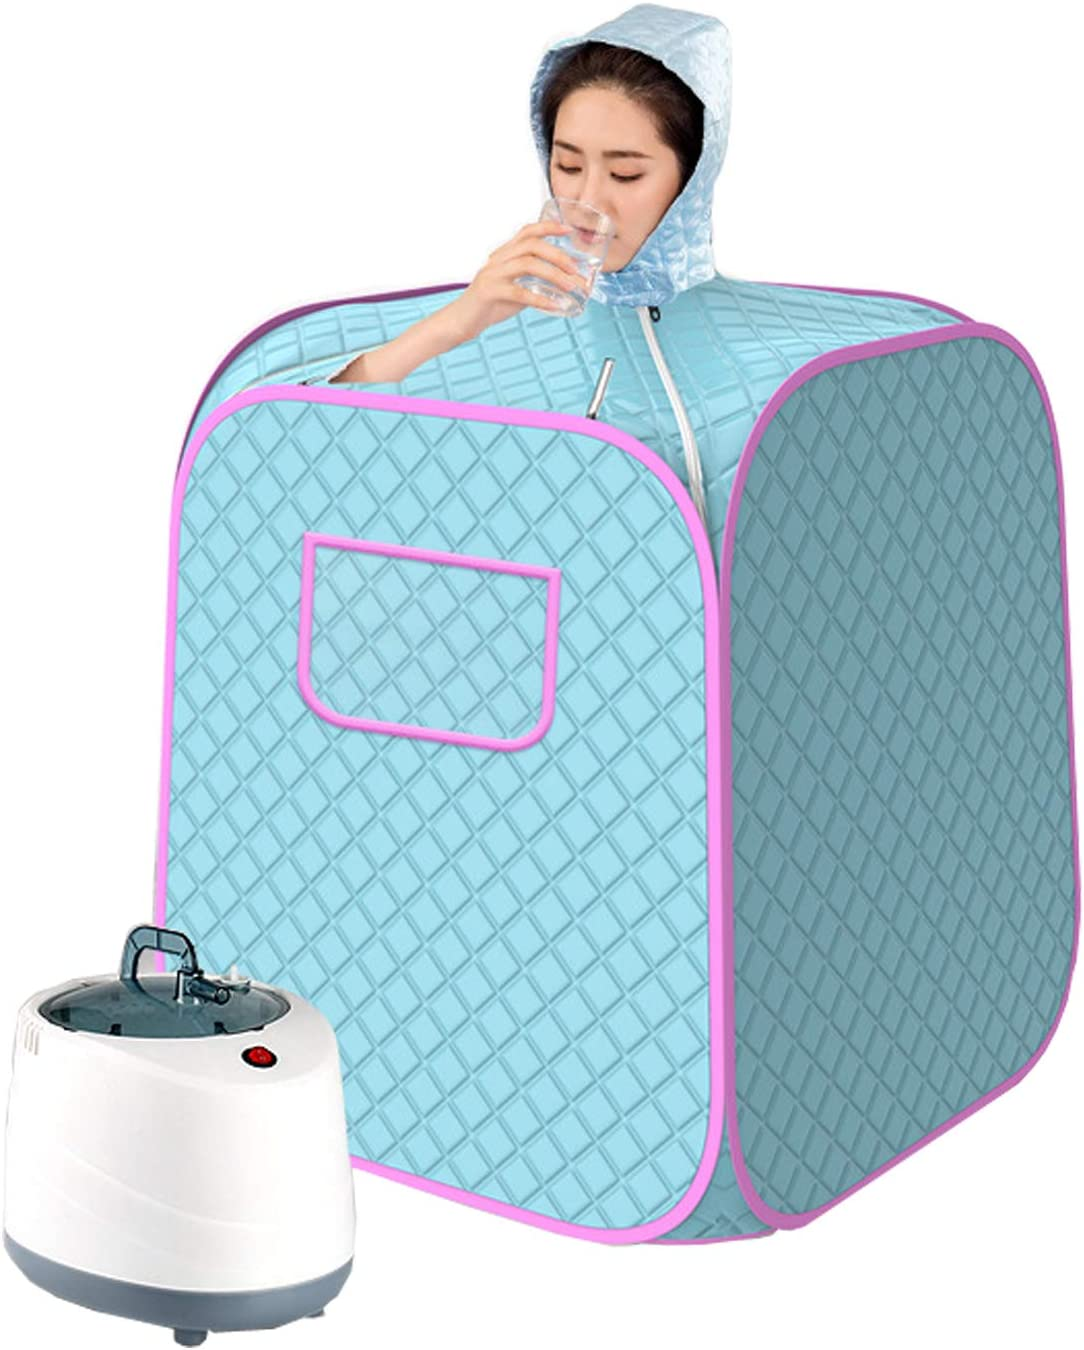 AnMoreH Home Spa Steam Sauna Kit, Person Full Body Portable Spa Sauna Hat Tent for Body Relaxation, 2L Portable Light Sauna with Remote Control, Timer